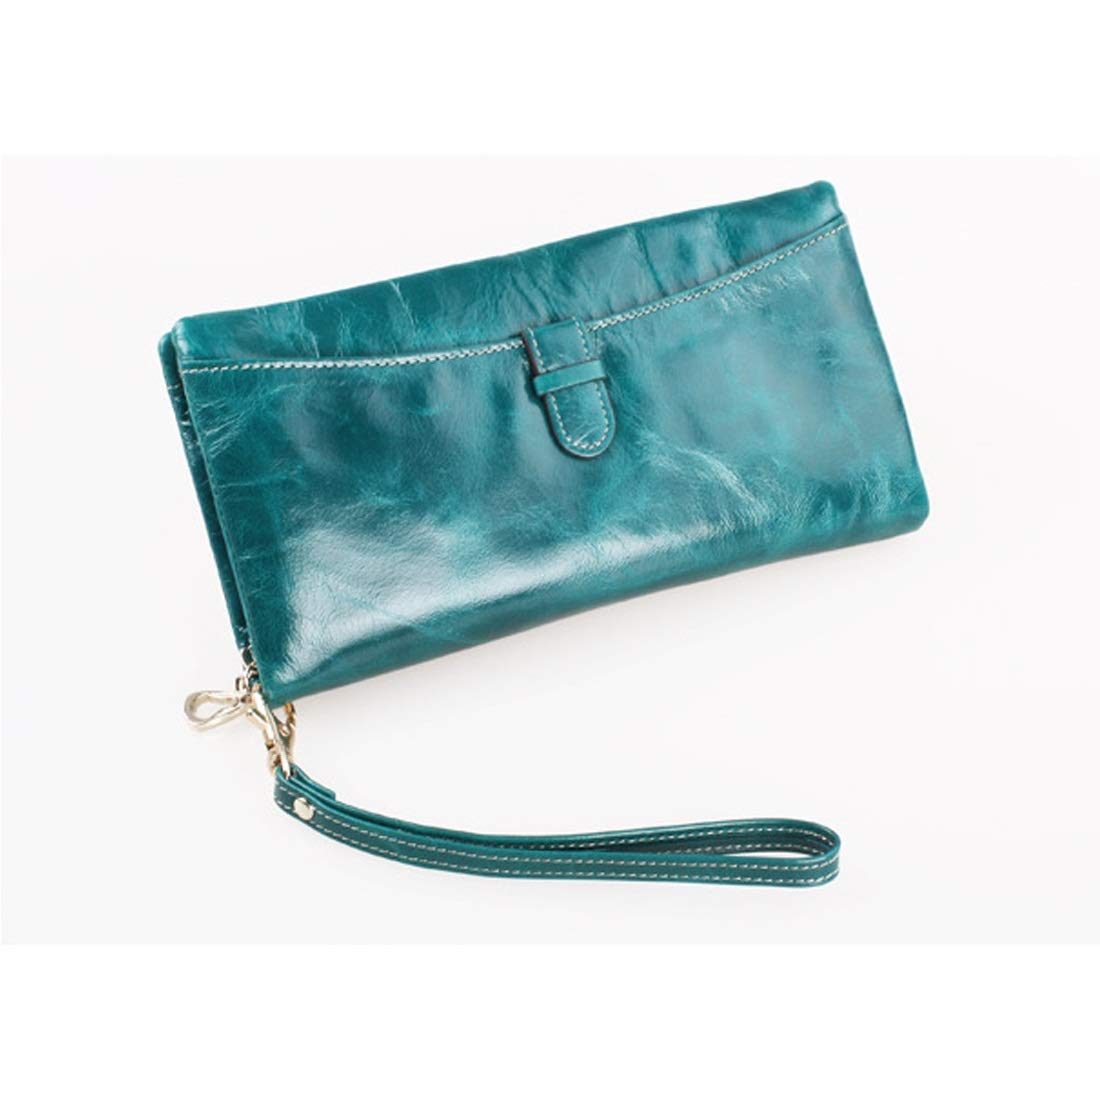 Professional Bag Long Wallet Women's Purse Cute Popular Large Capacity Zipper Leather Cowhide 5 color. Outdoor Travel Essentials (color   Green)